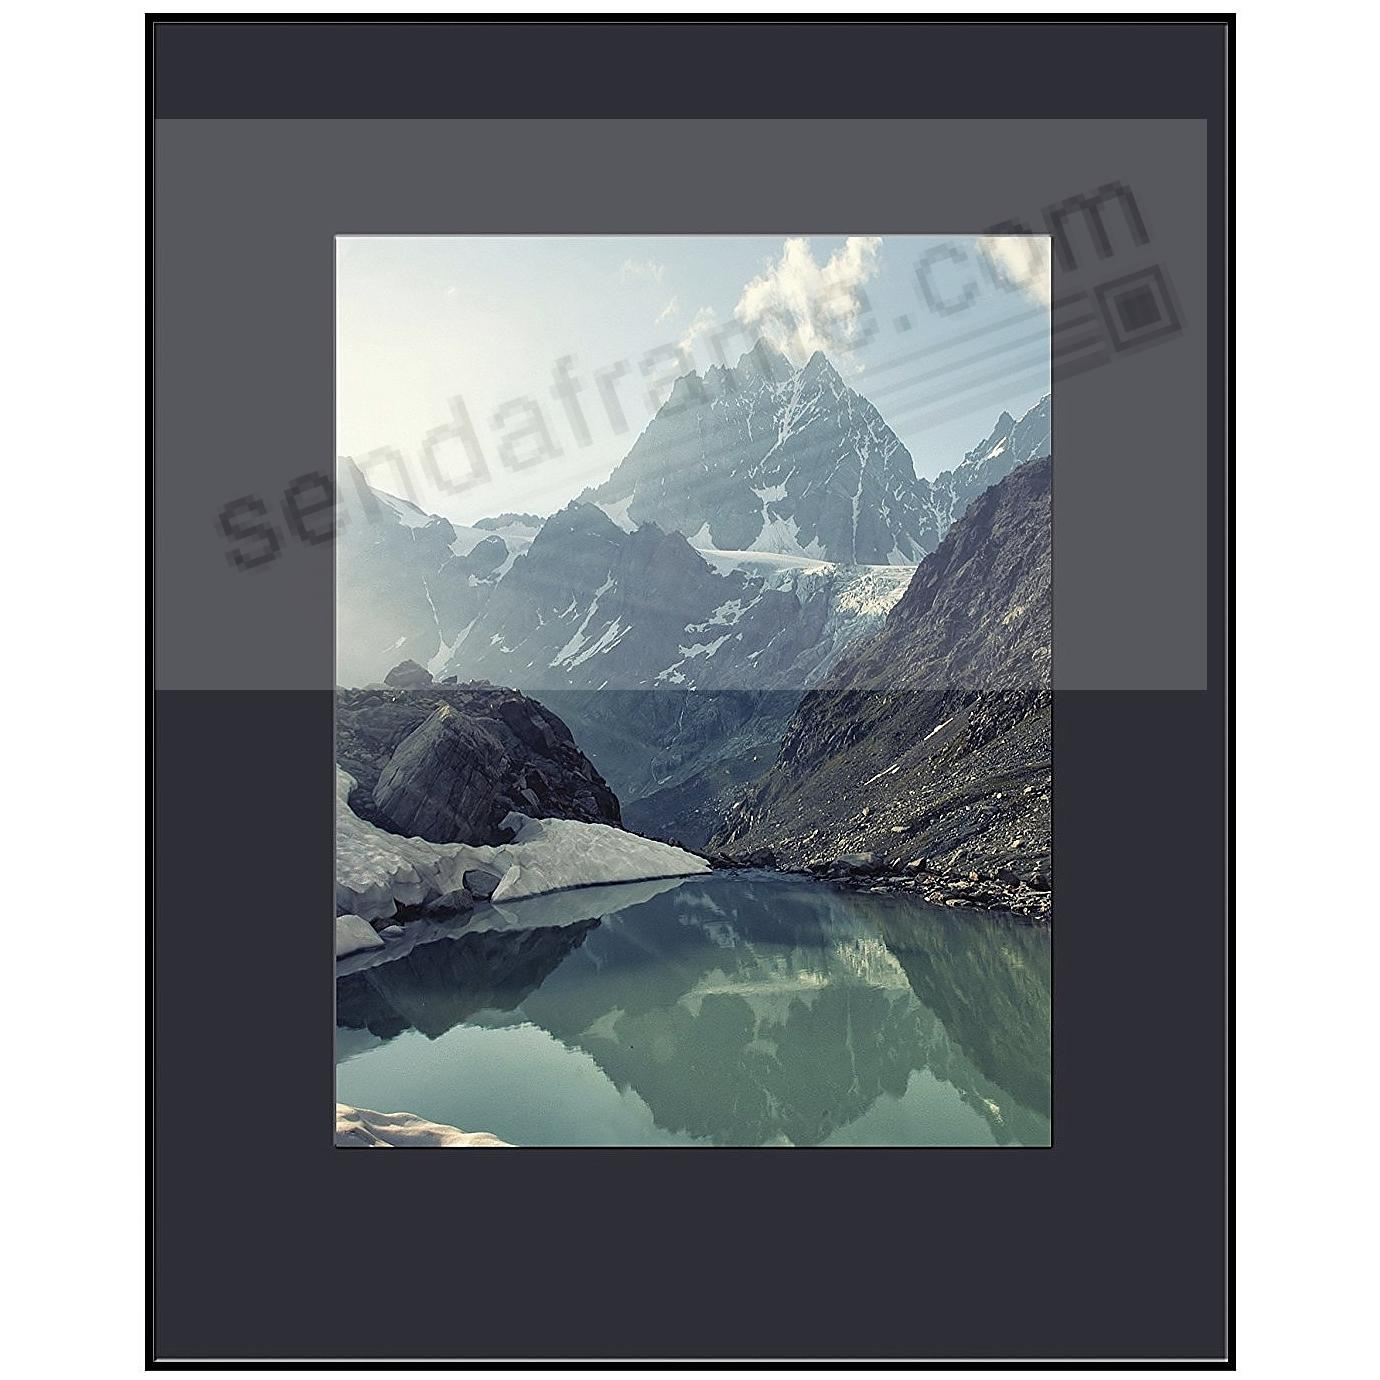 PHOTOGRAPHY Metallic frame MATTE-BLACK/Black Matted 16x20/11x14 by ARTCARE®